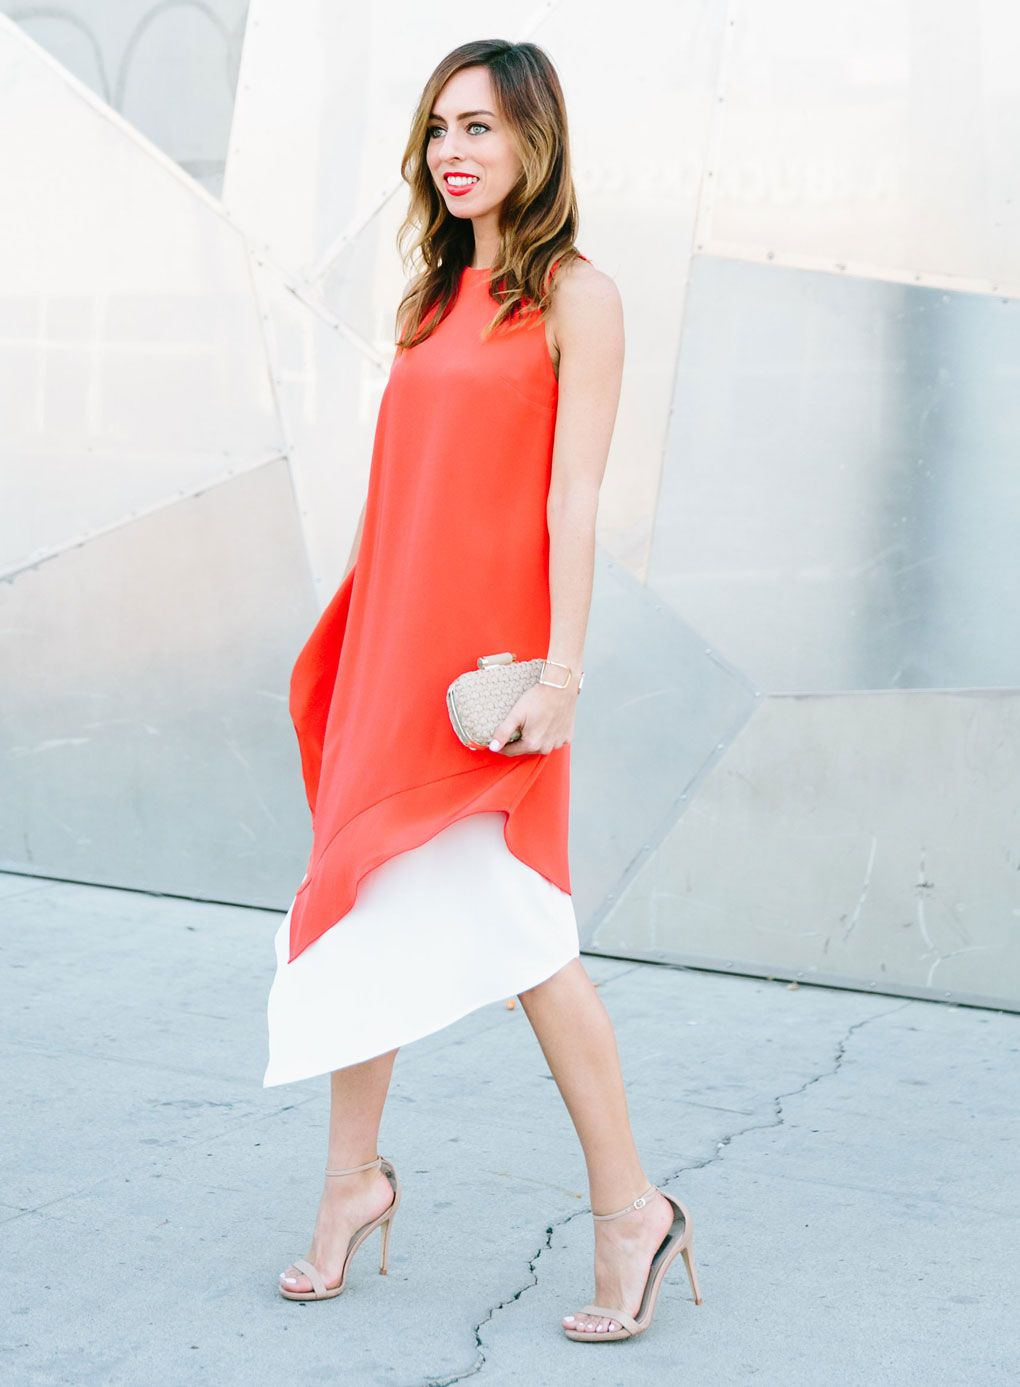 Sydne Style - Los Angeles fashion blogger and People StyleWatch contributor Sydne Summer showcases the top color trends for spring 2016 with an orange dress